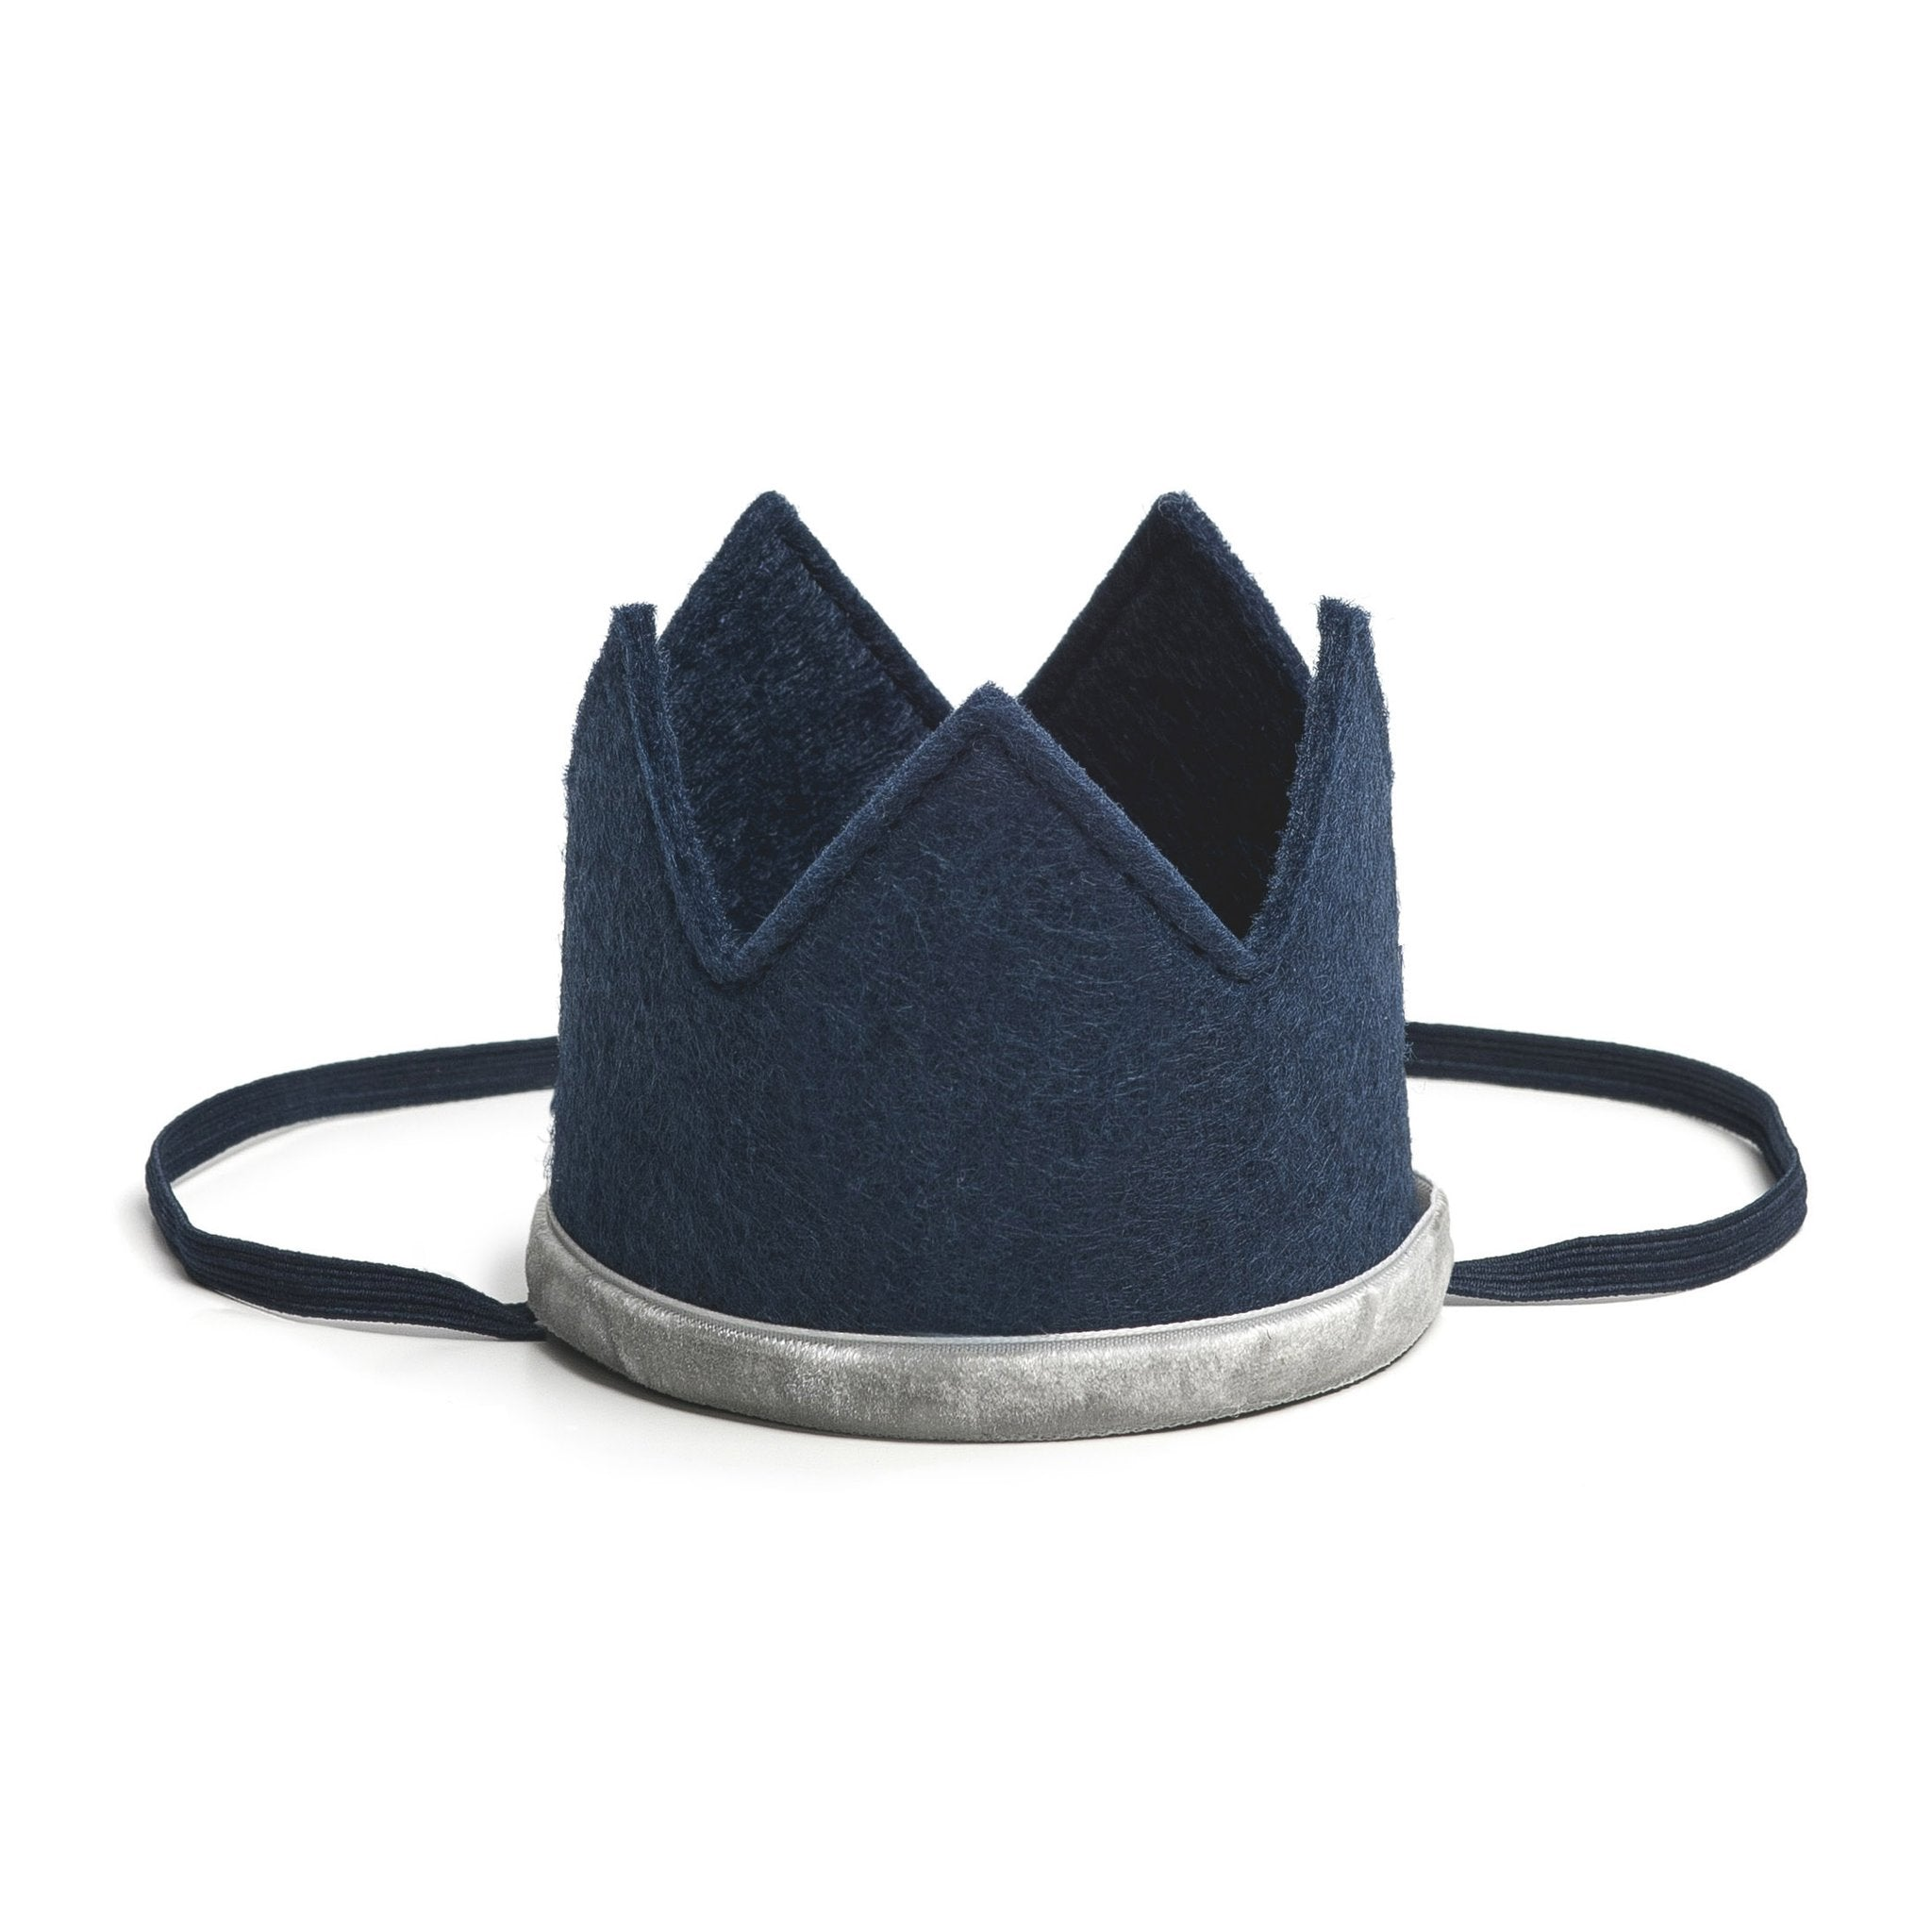 Navy/Gray Boy Crown